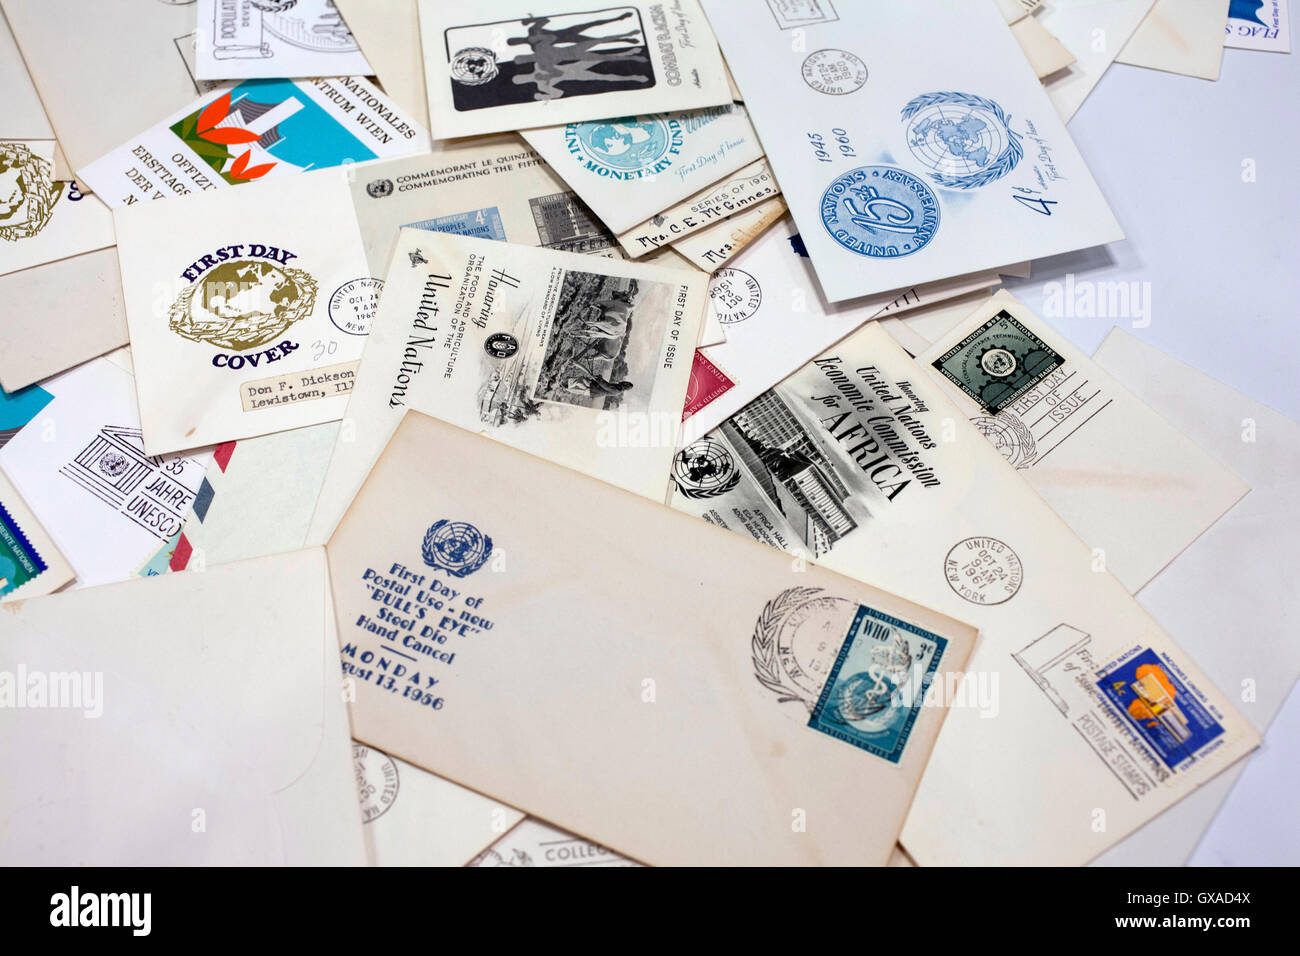 World Stamp Show-NY 2016 is the once-a-decade international celebration of stamp collecting in the NYC Javits Convention Stock Photo